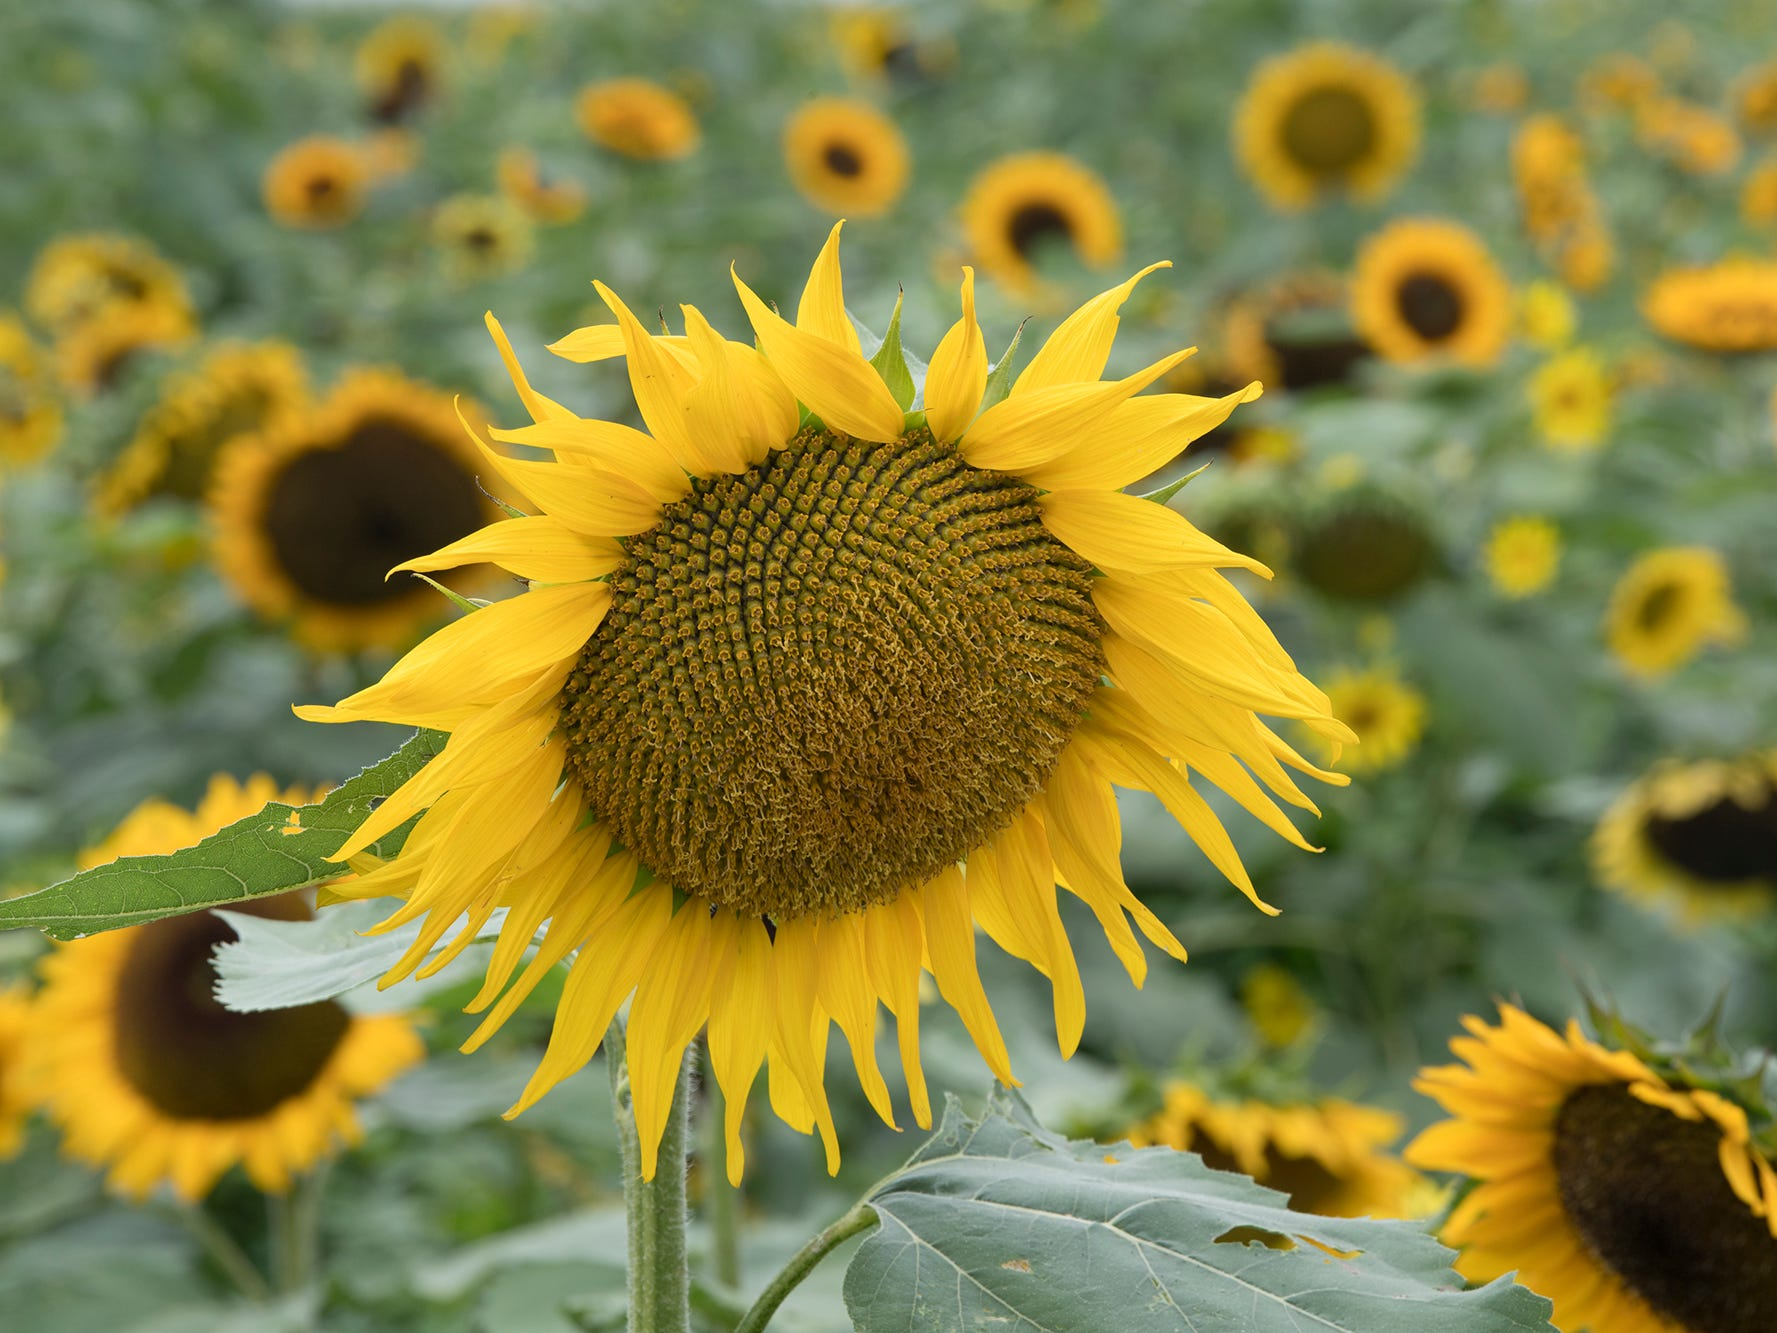 Sunflowers during the 2nd Annual Sunflower Festival at Maple Lawn Farms near New Park.